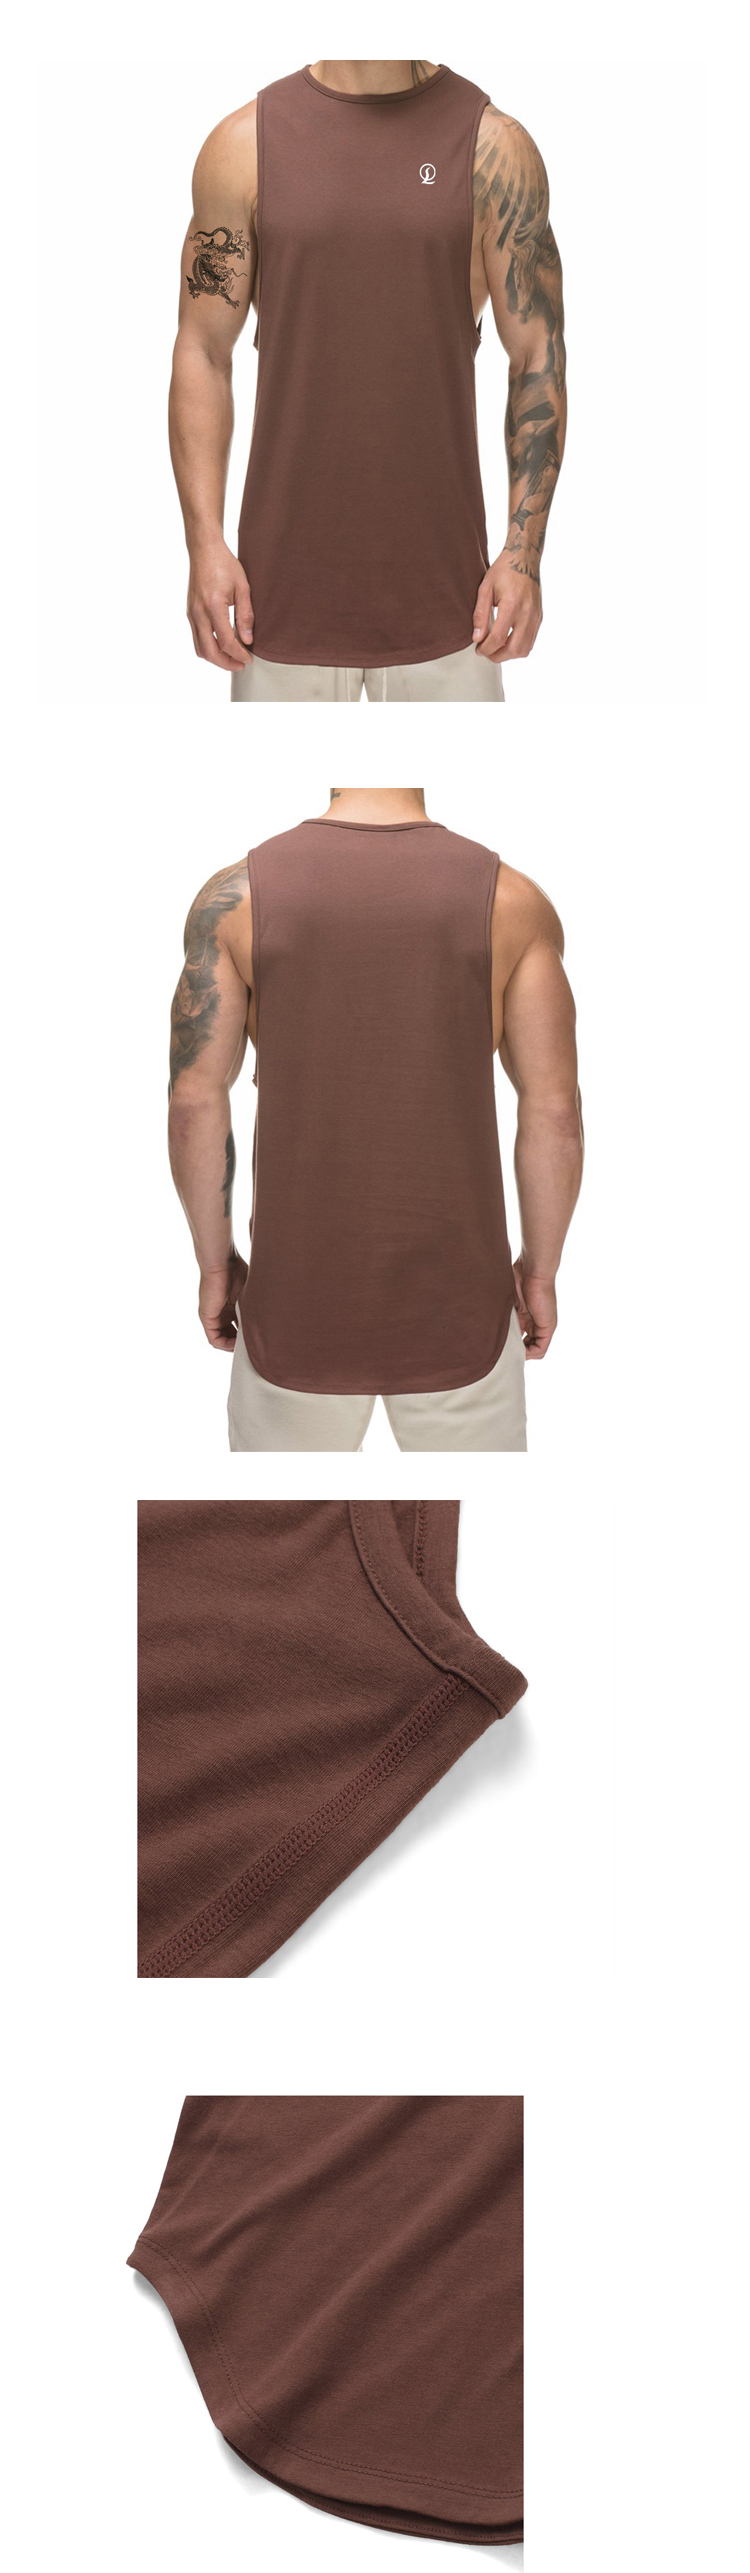 Cool dry scoop hem mens tank top quicky dry burnout tank top bodybuilding gym singlet customized